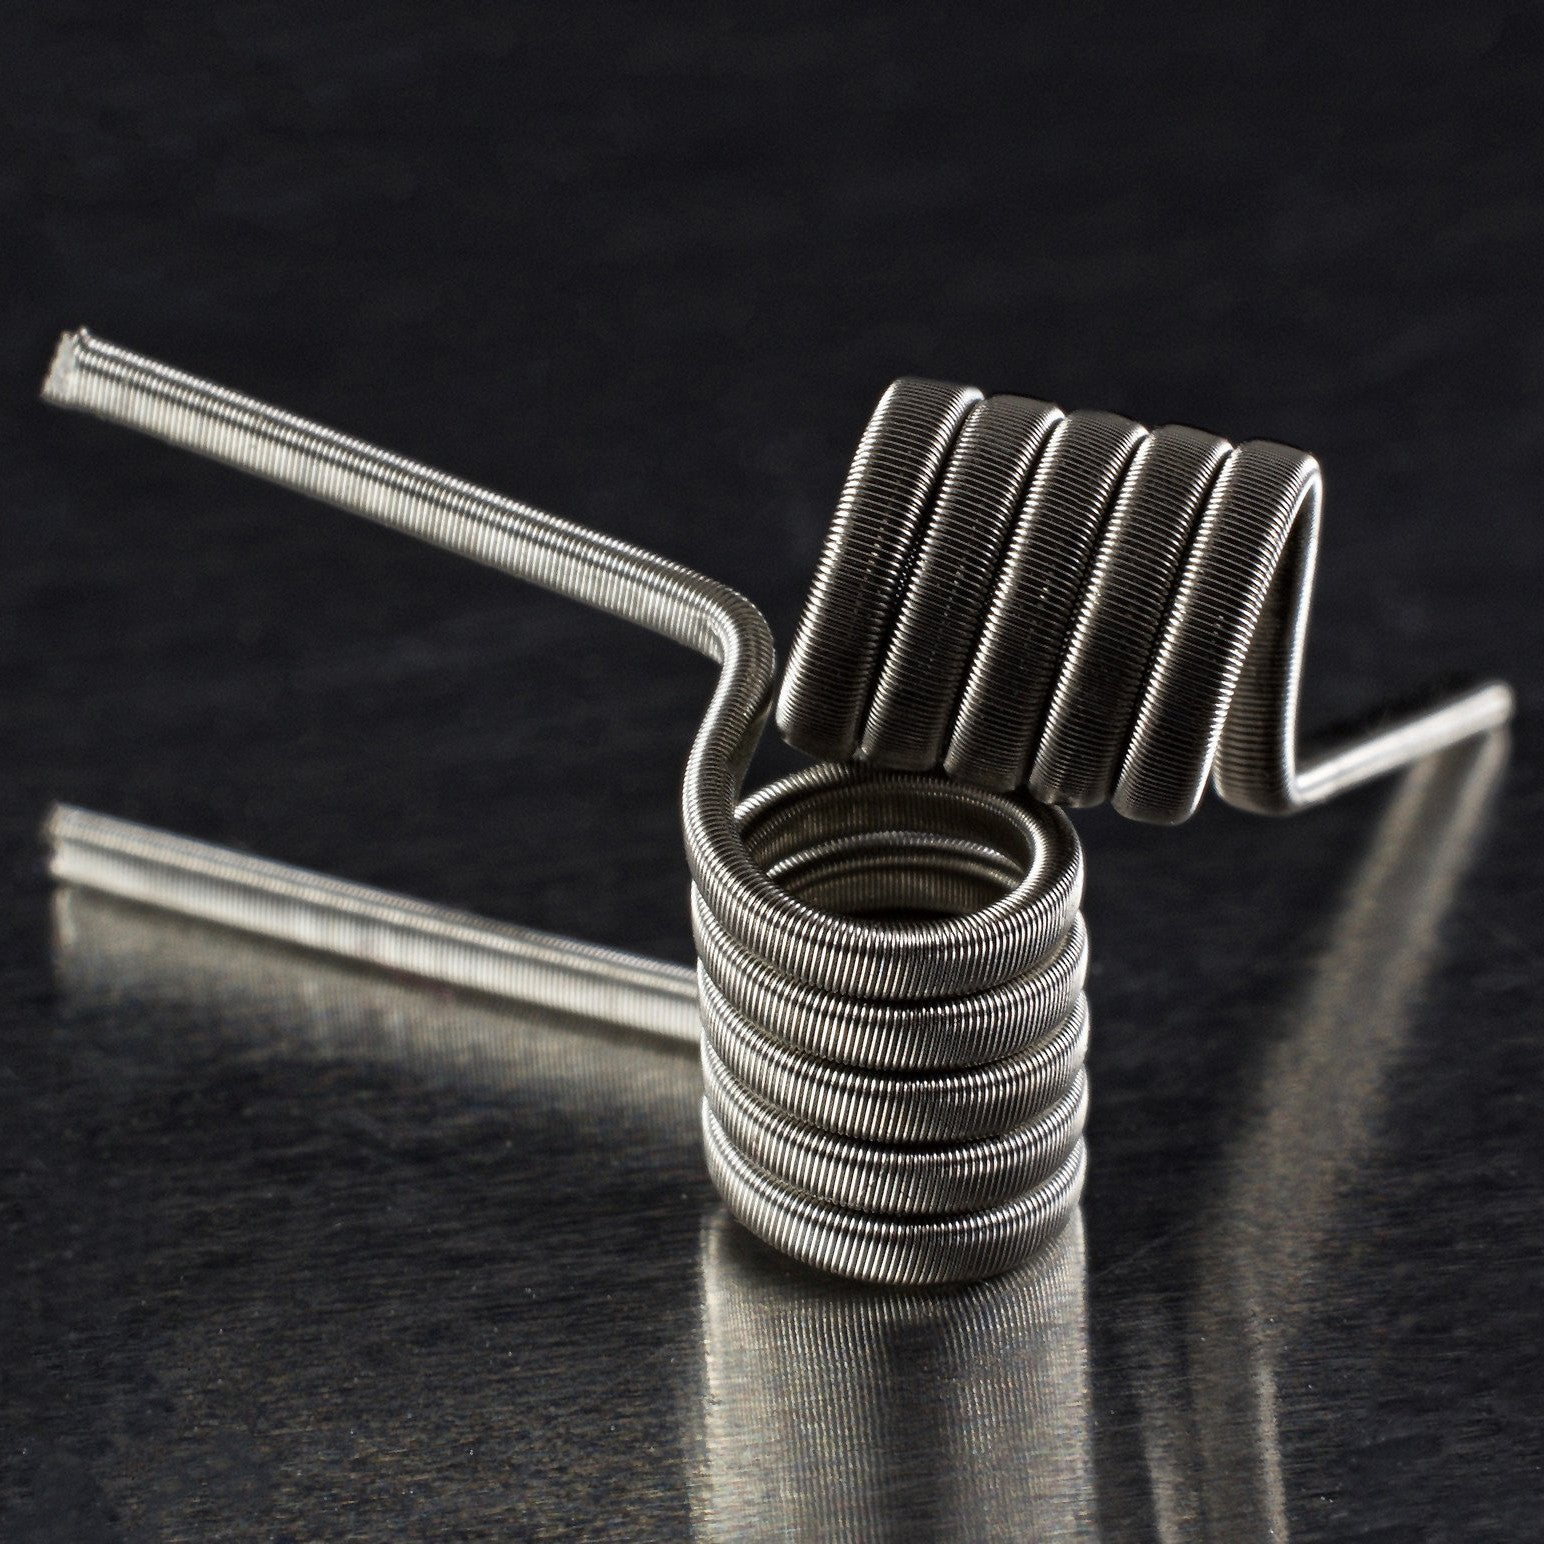 Fused Clapton - OHMLAND COILS